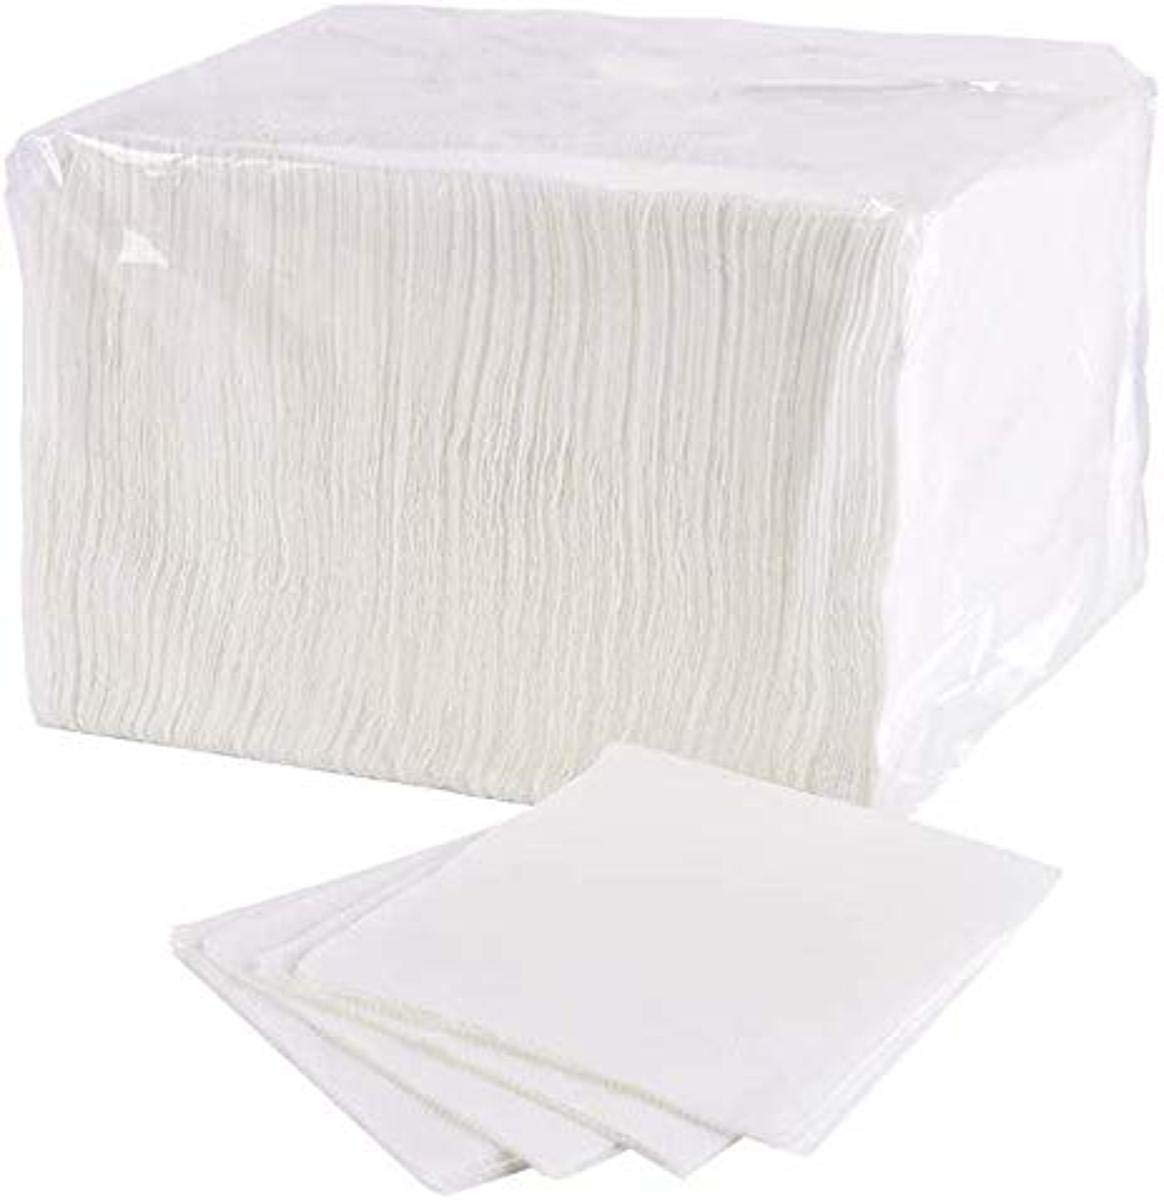 All items in the store Elegant Lunch Napkin Popular brand in the world 500 1 White of Ply Pack